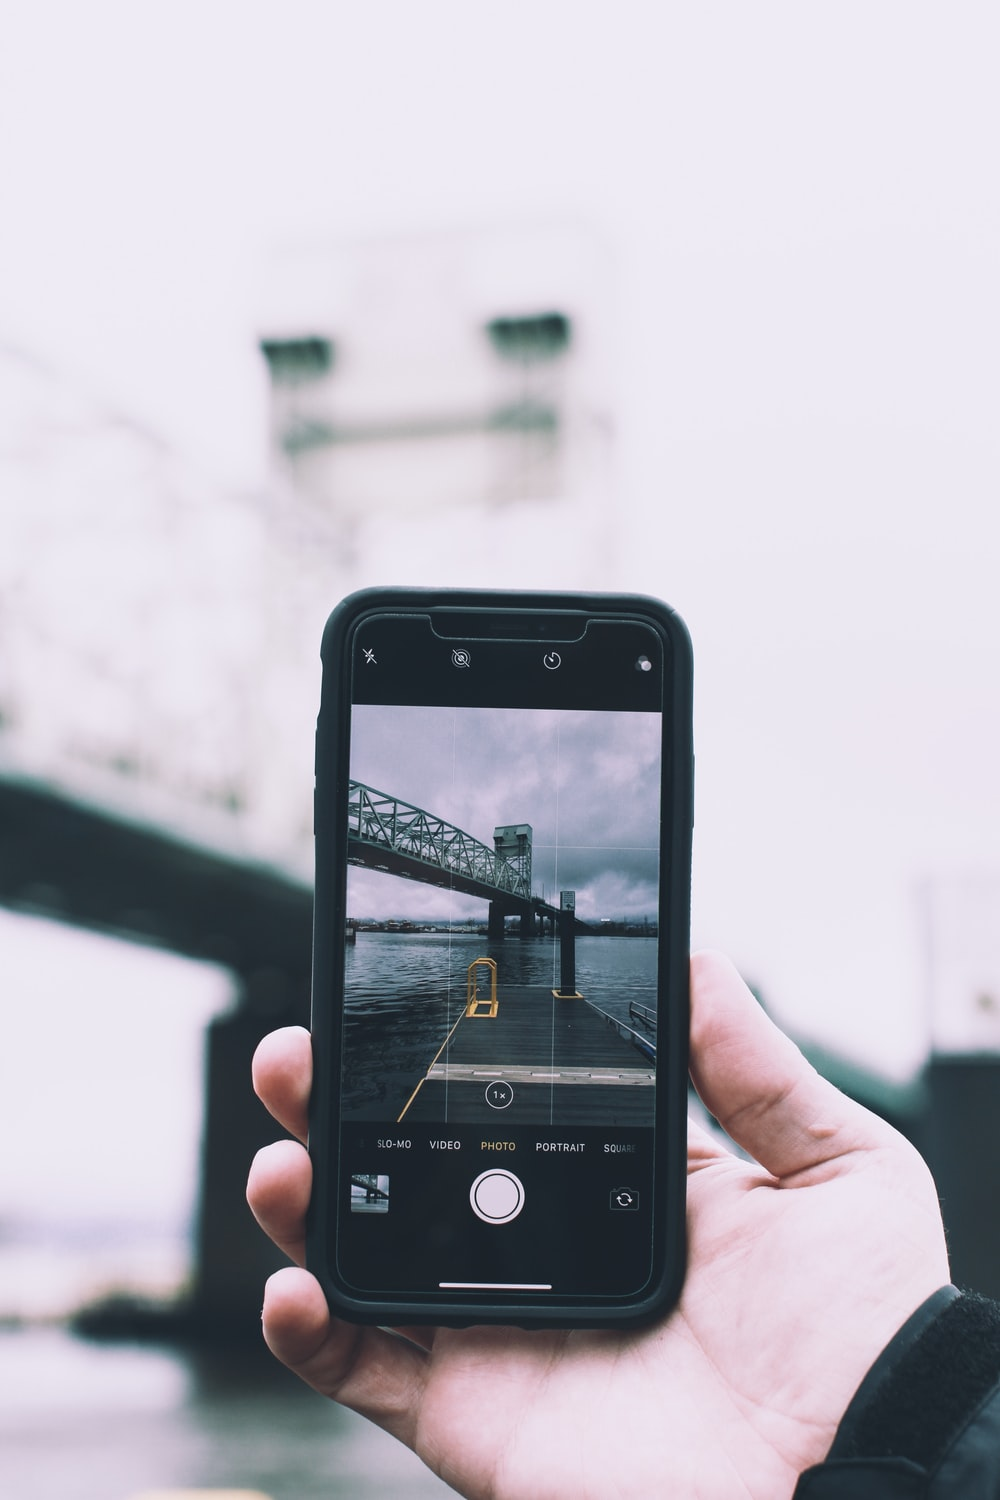 person holding black smartphone taking photo of bridge